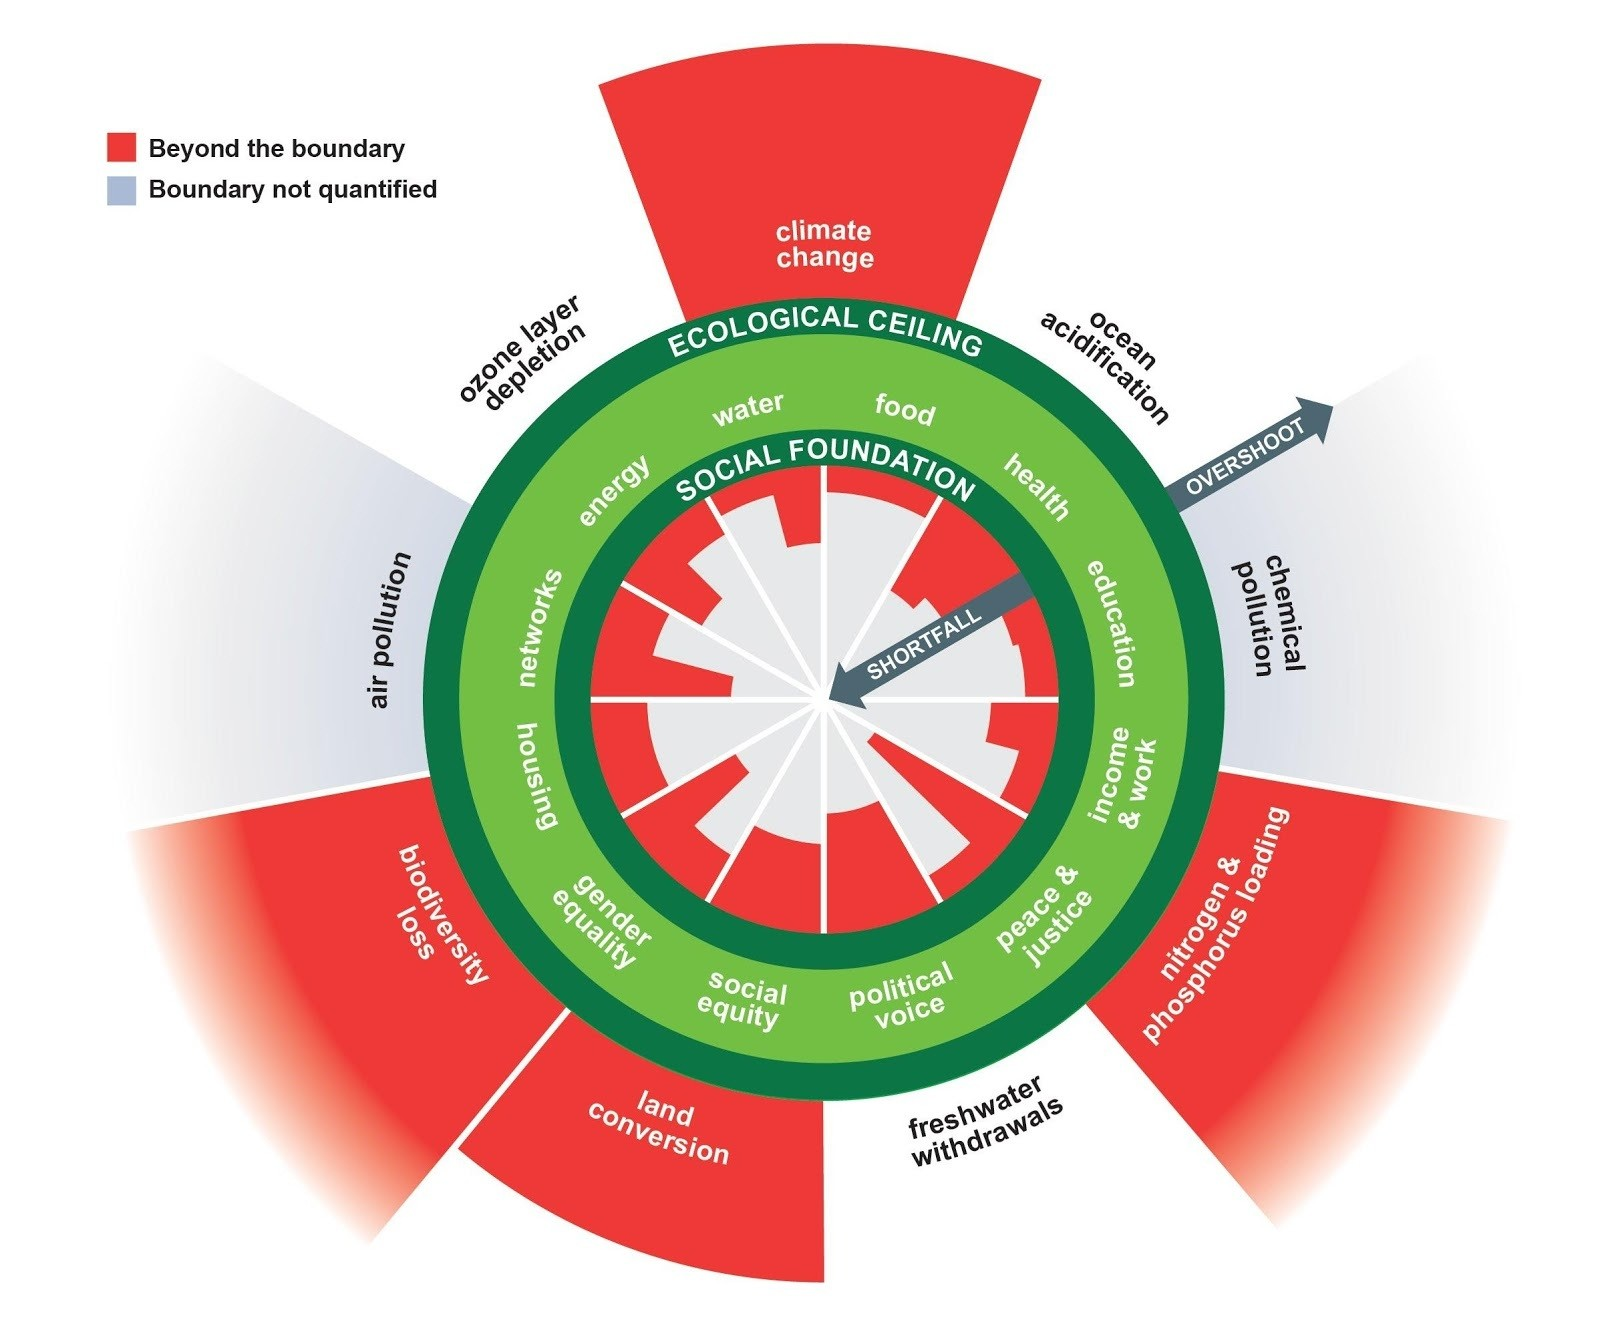 The Doughnut of social and planetary boundaries